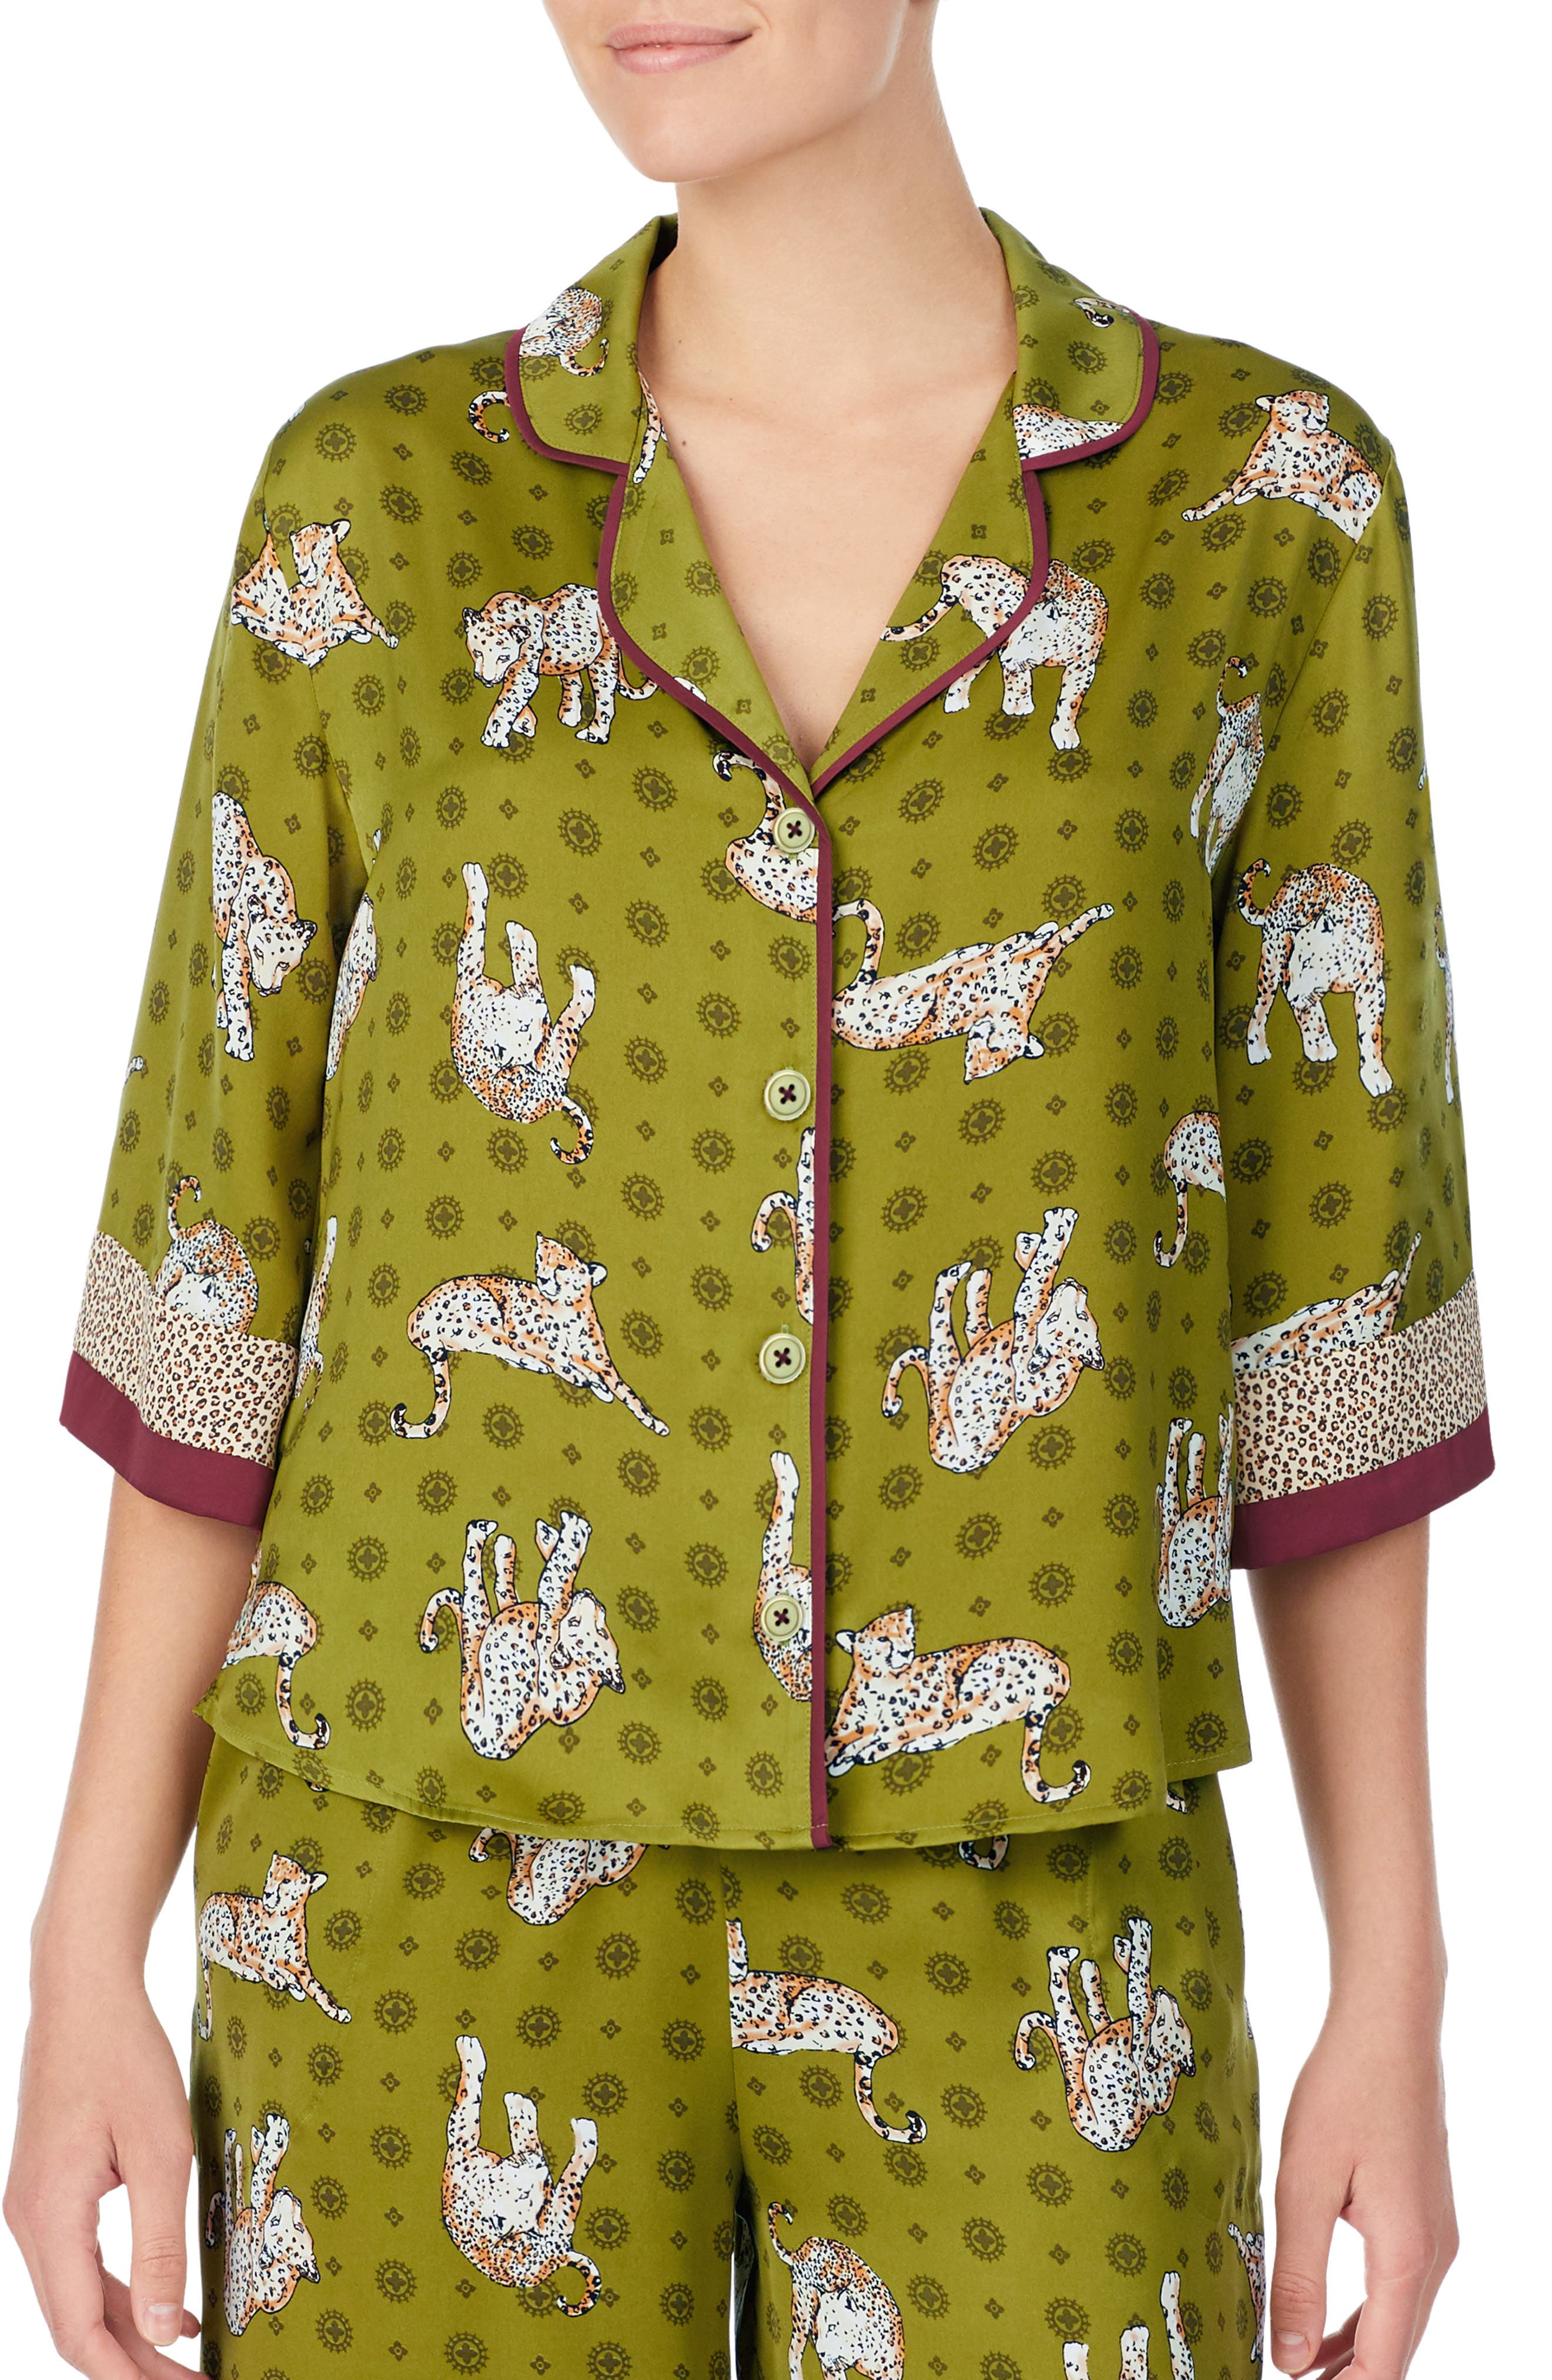 Room Service Pajama Top, Green (Nordstrom Exclusive)